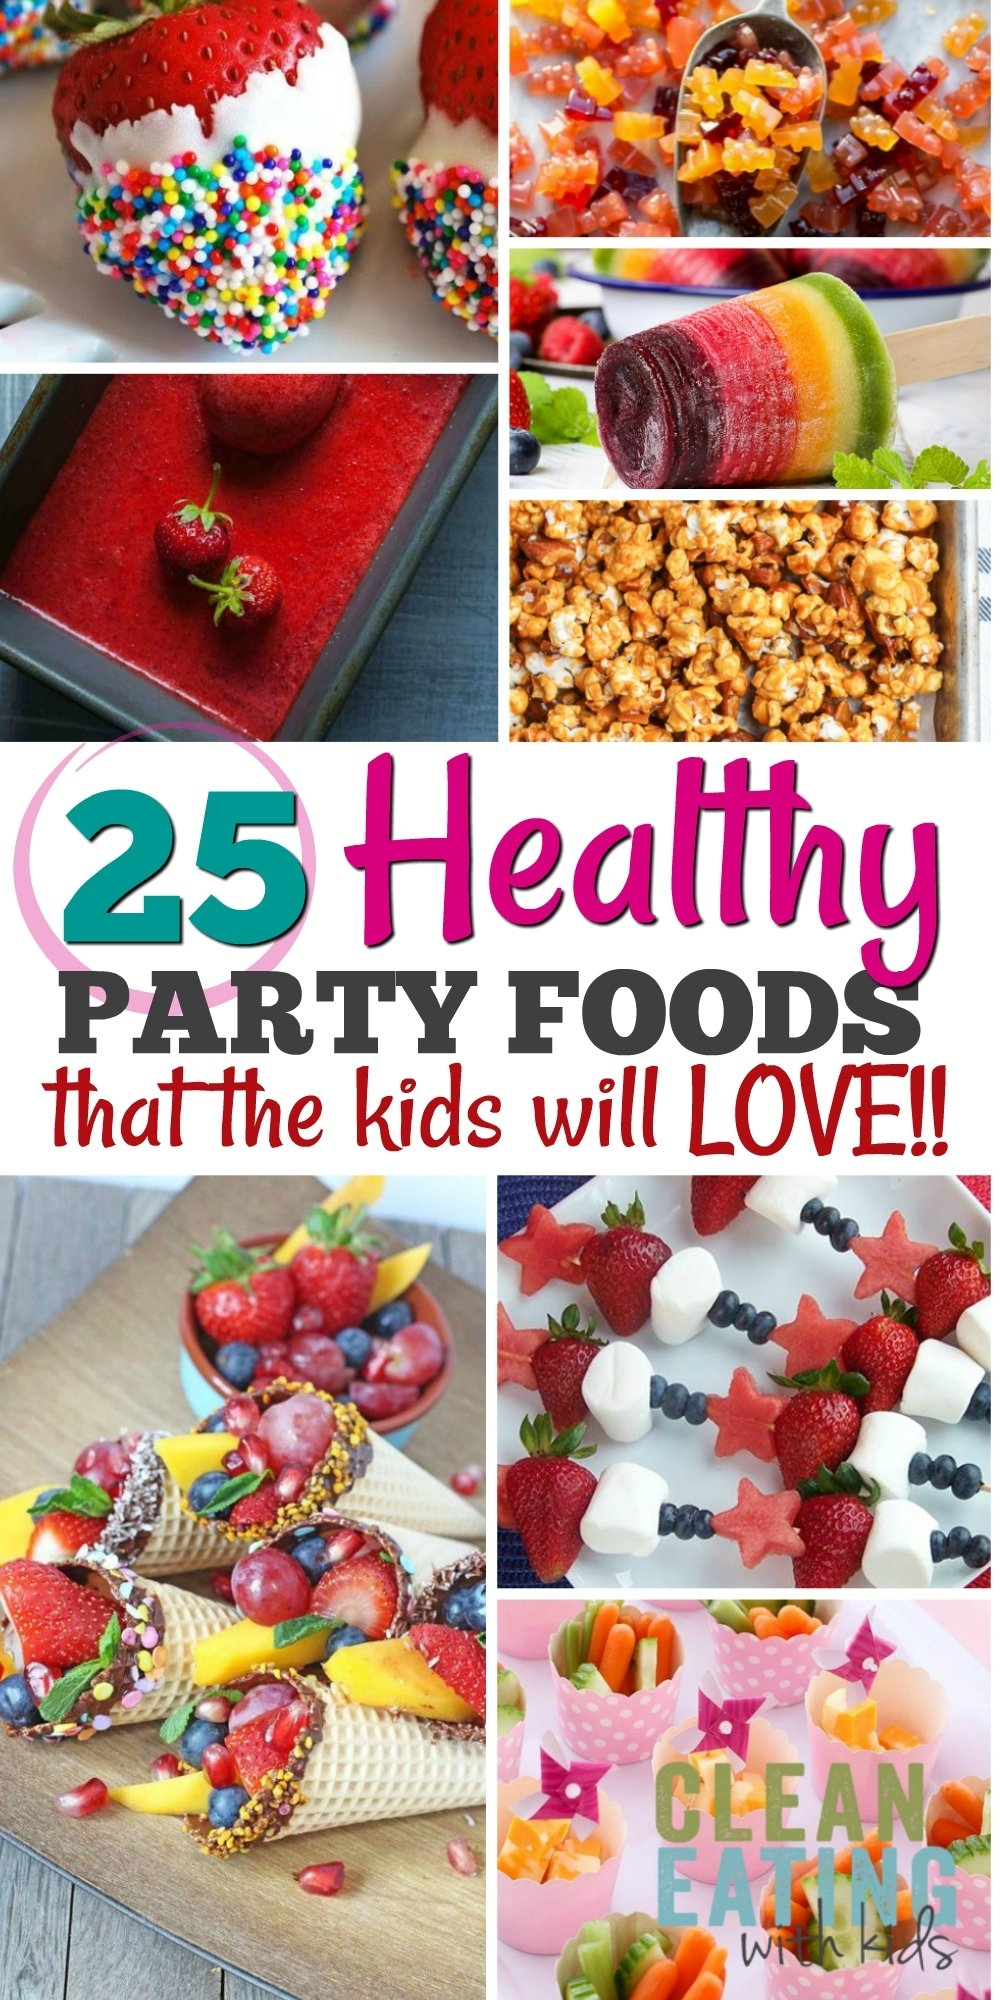 10 Attractive Snack Ideas For A Party 25 healthy birthday party food ideas clean eating with kids 23 2020